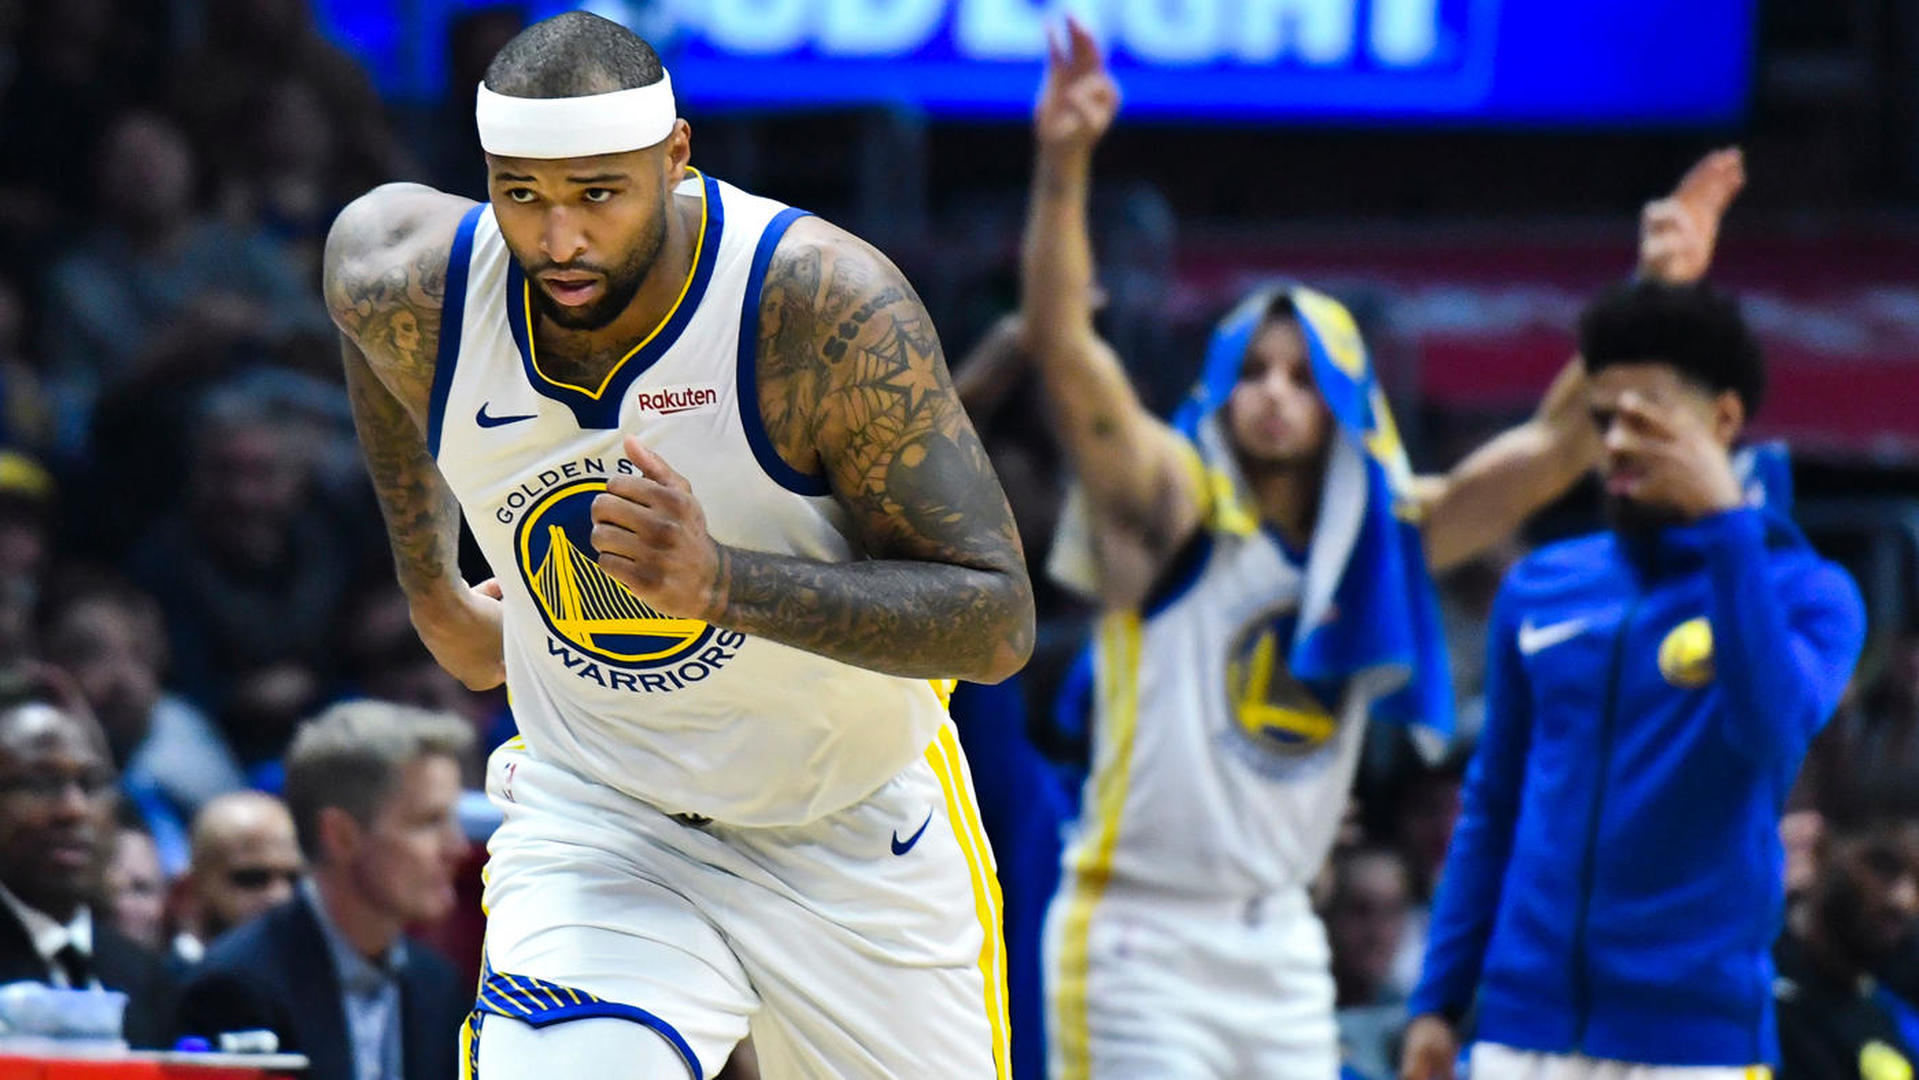 Warriors' DeMarcus Cousins on short-lived partnership with Anthony Davis: 'I think about our pairing all the time'